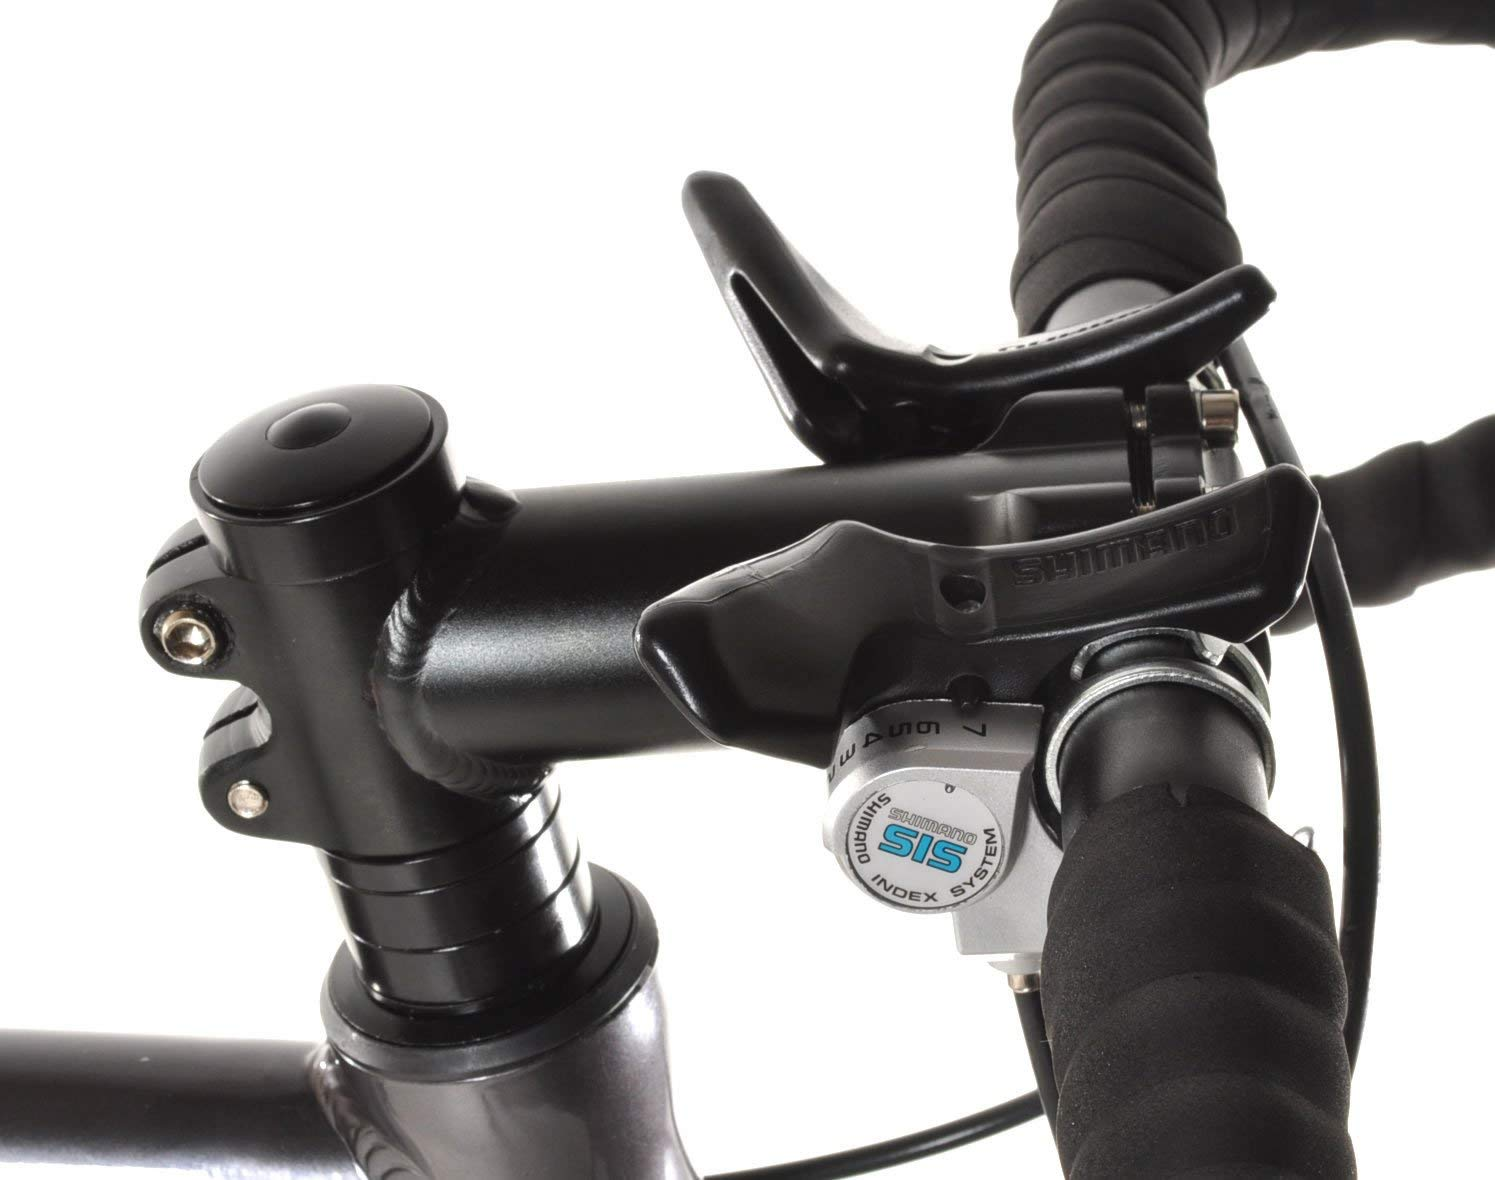 Shimano 21 speed shifter